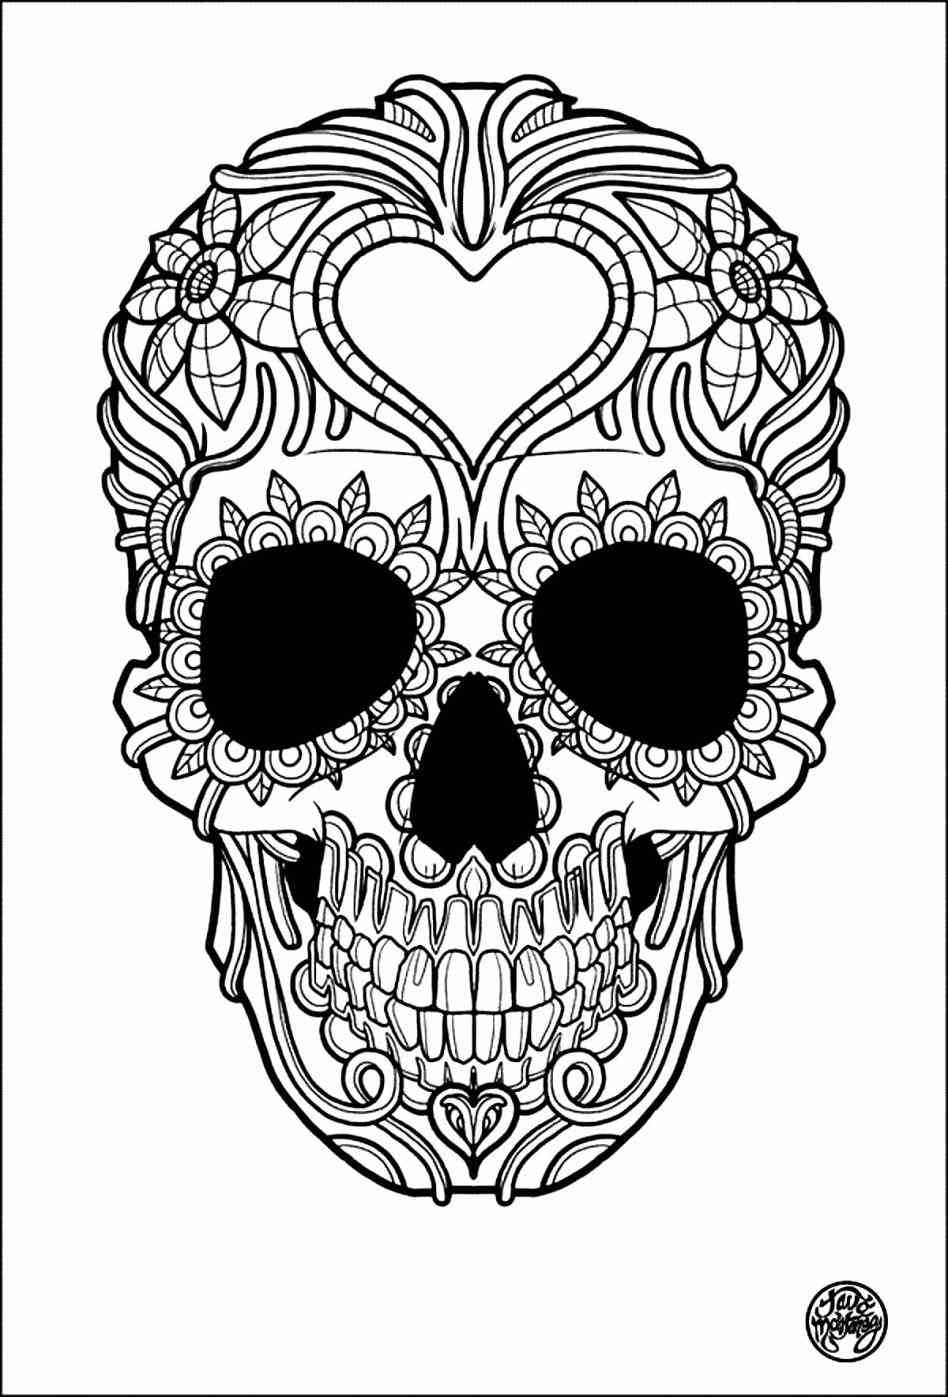 948x1397 Sugar Skull Drawings Tumblr Sugar Skull Drawings With Roses Tumblr